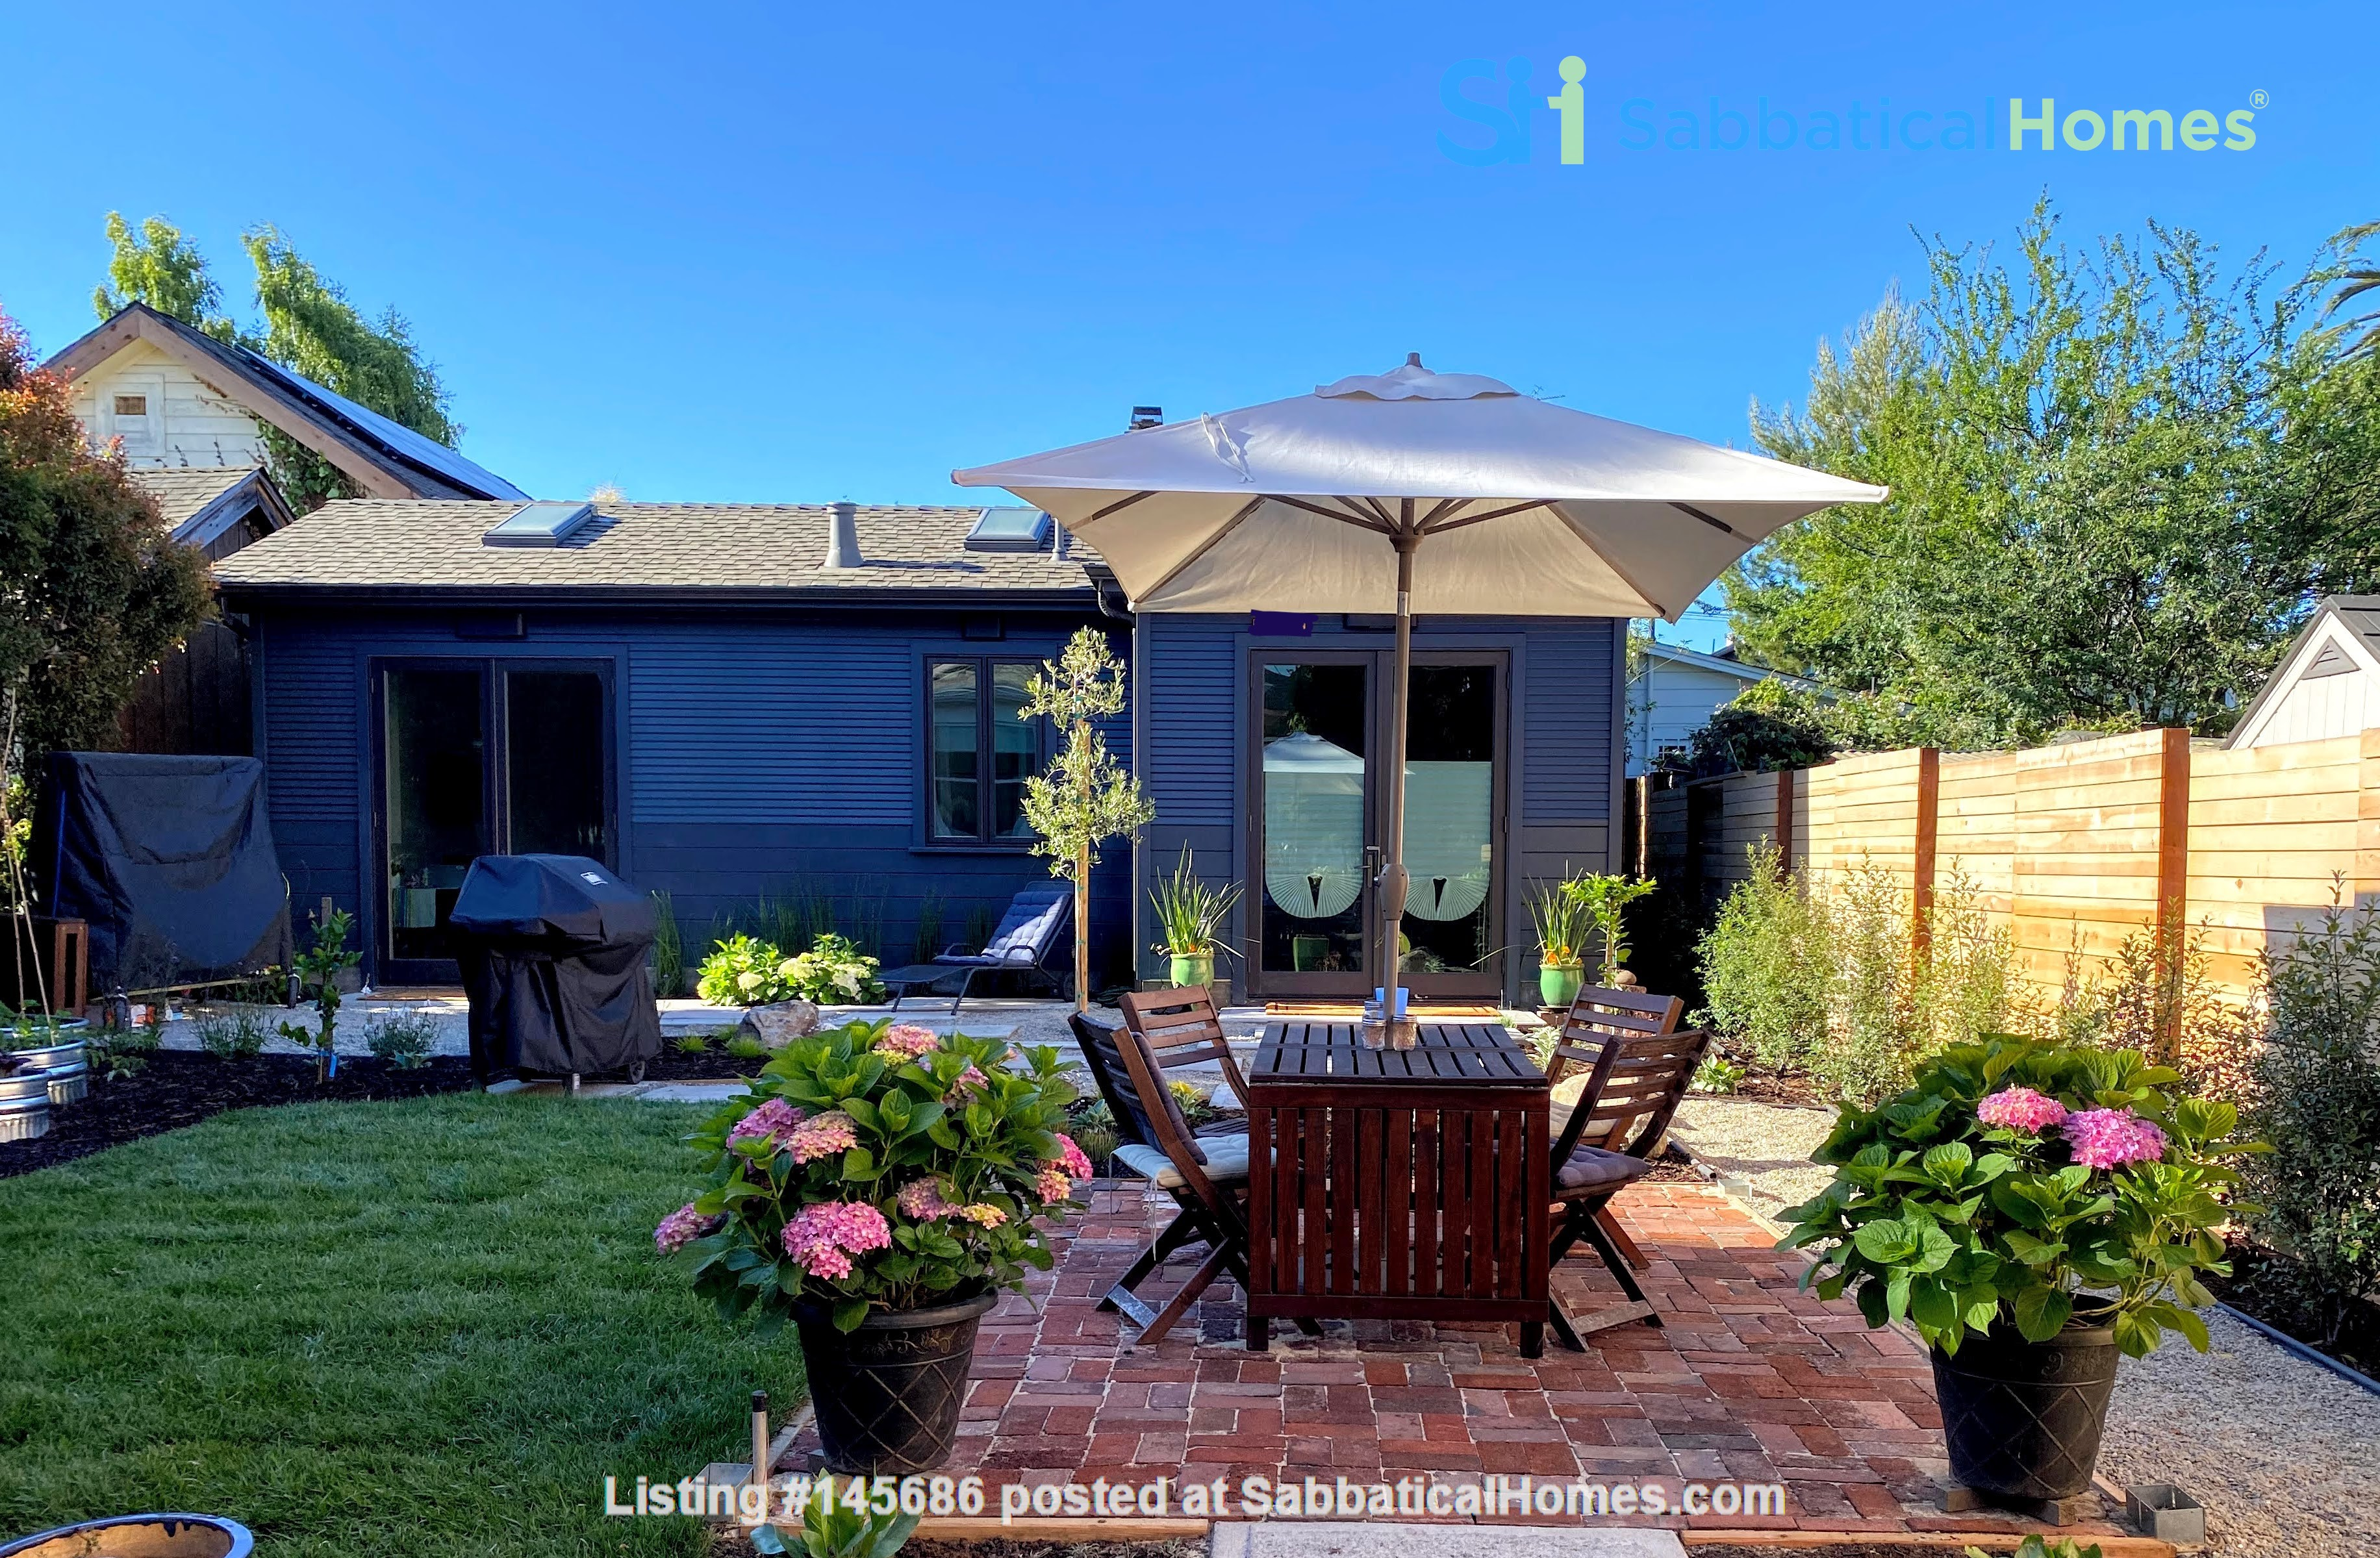 Newly Built Cosy and Modern South Berkeley Backyard Cottage - 1 Bed/1 Bath Home Rental in Berkeley 1